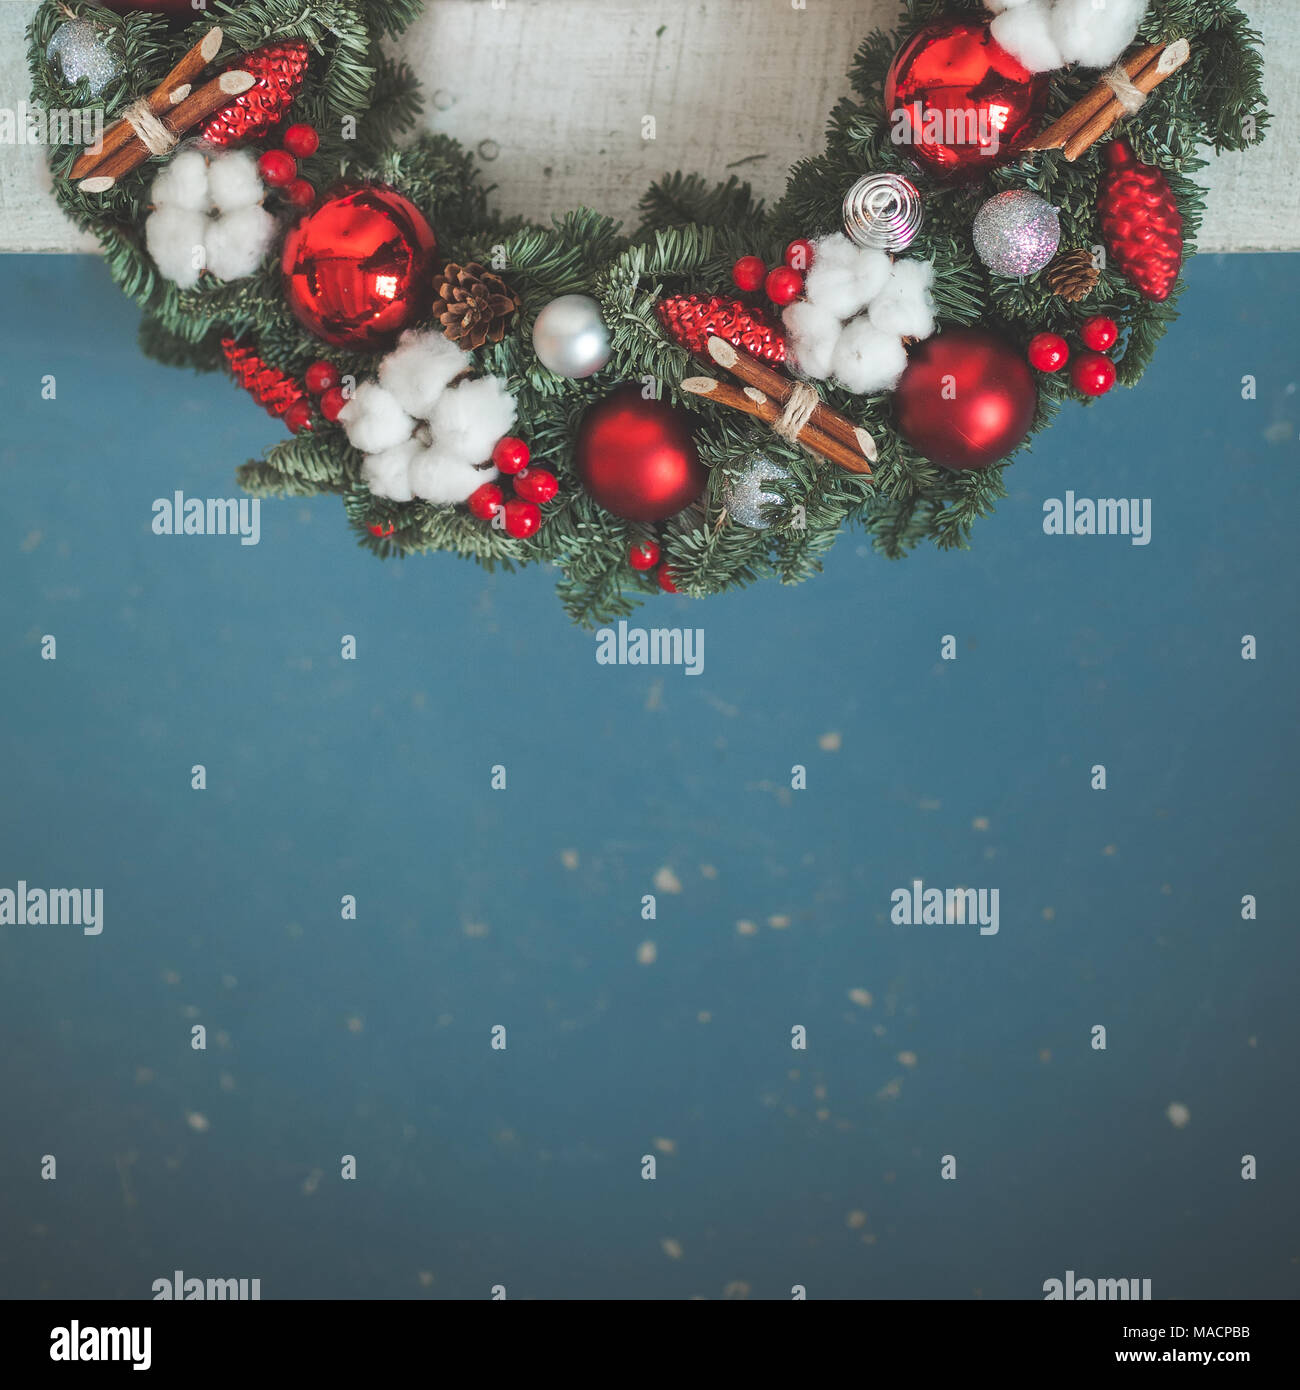 Christmas Background with Green Xmas Tree Twig, Red Glass Balls and New Year Decorations on Blue Background - Stock Image